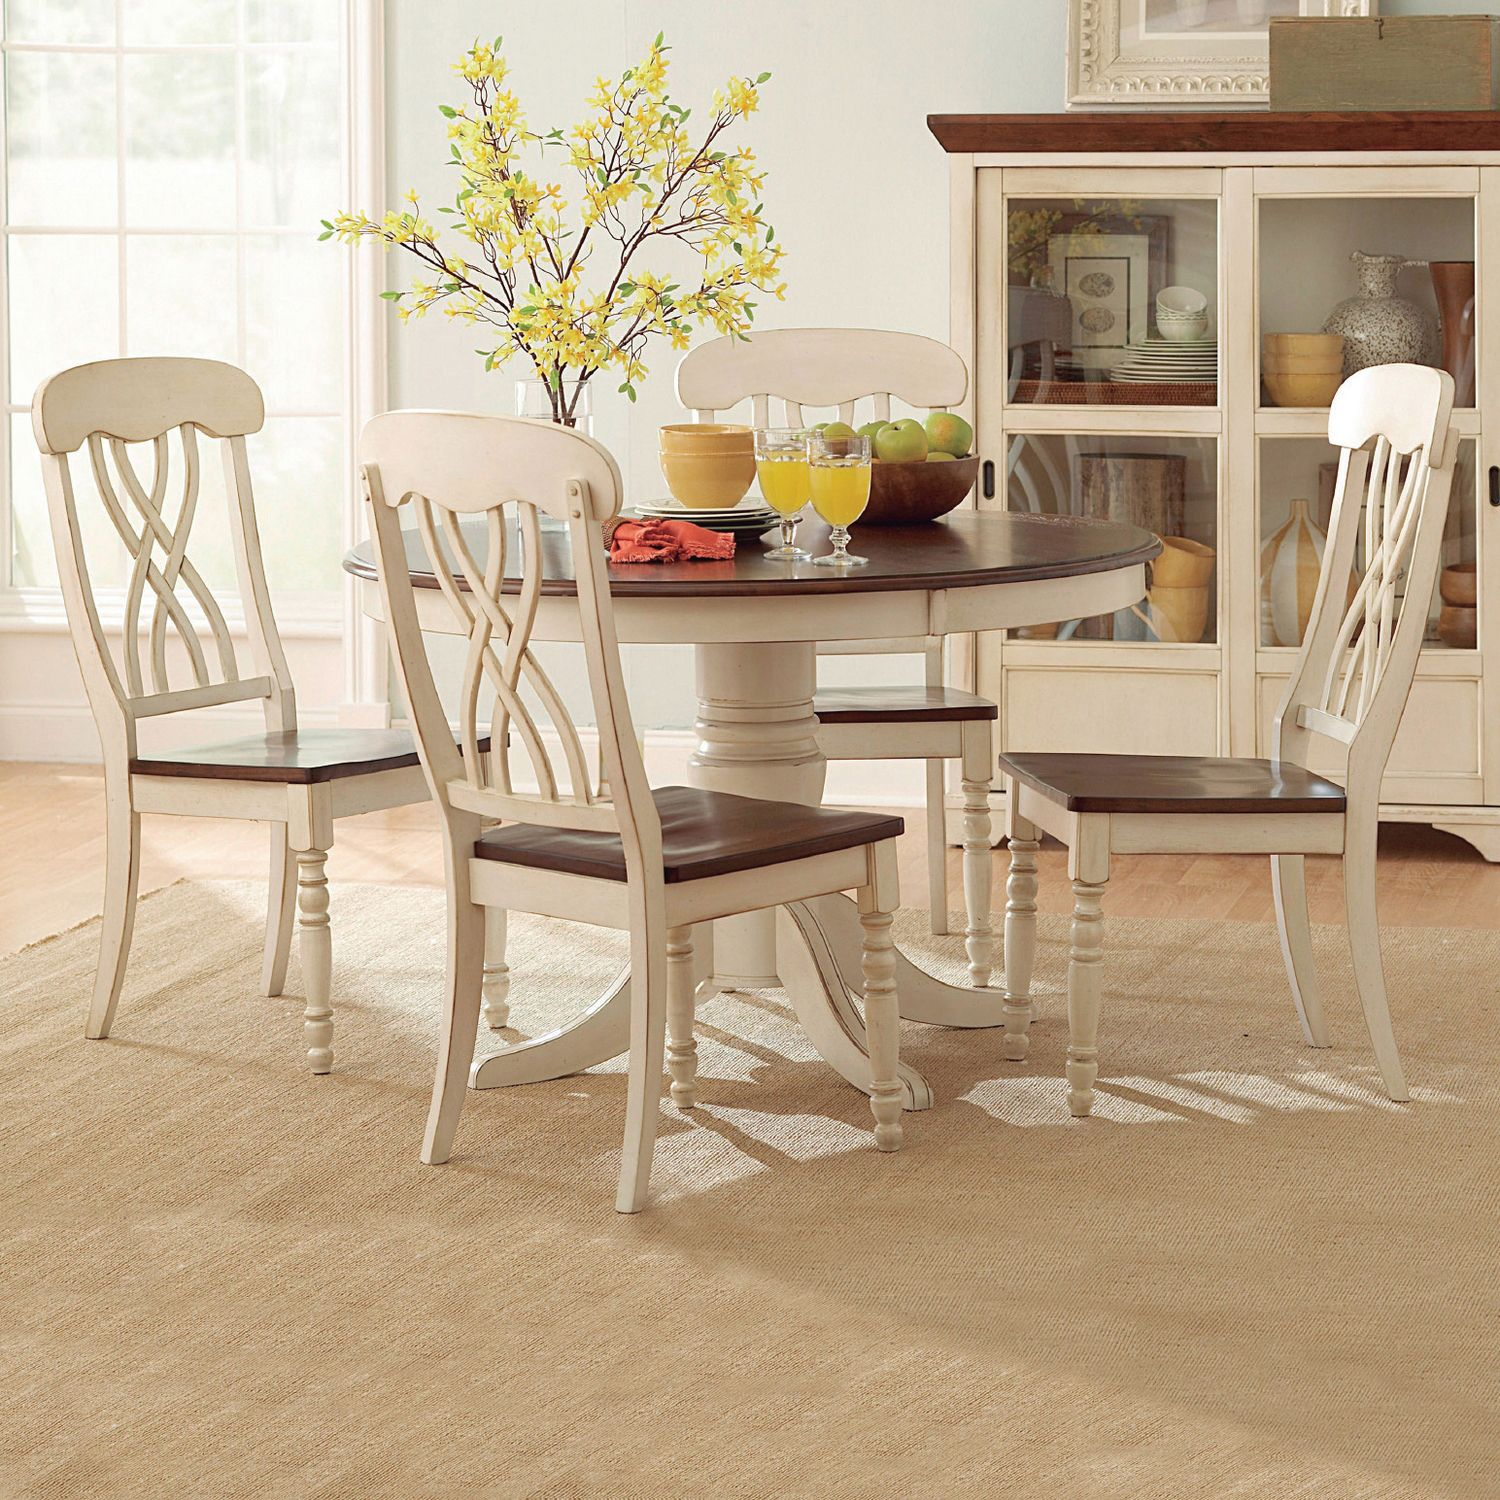 The design of this piece dining set from mackenzie captures the